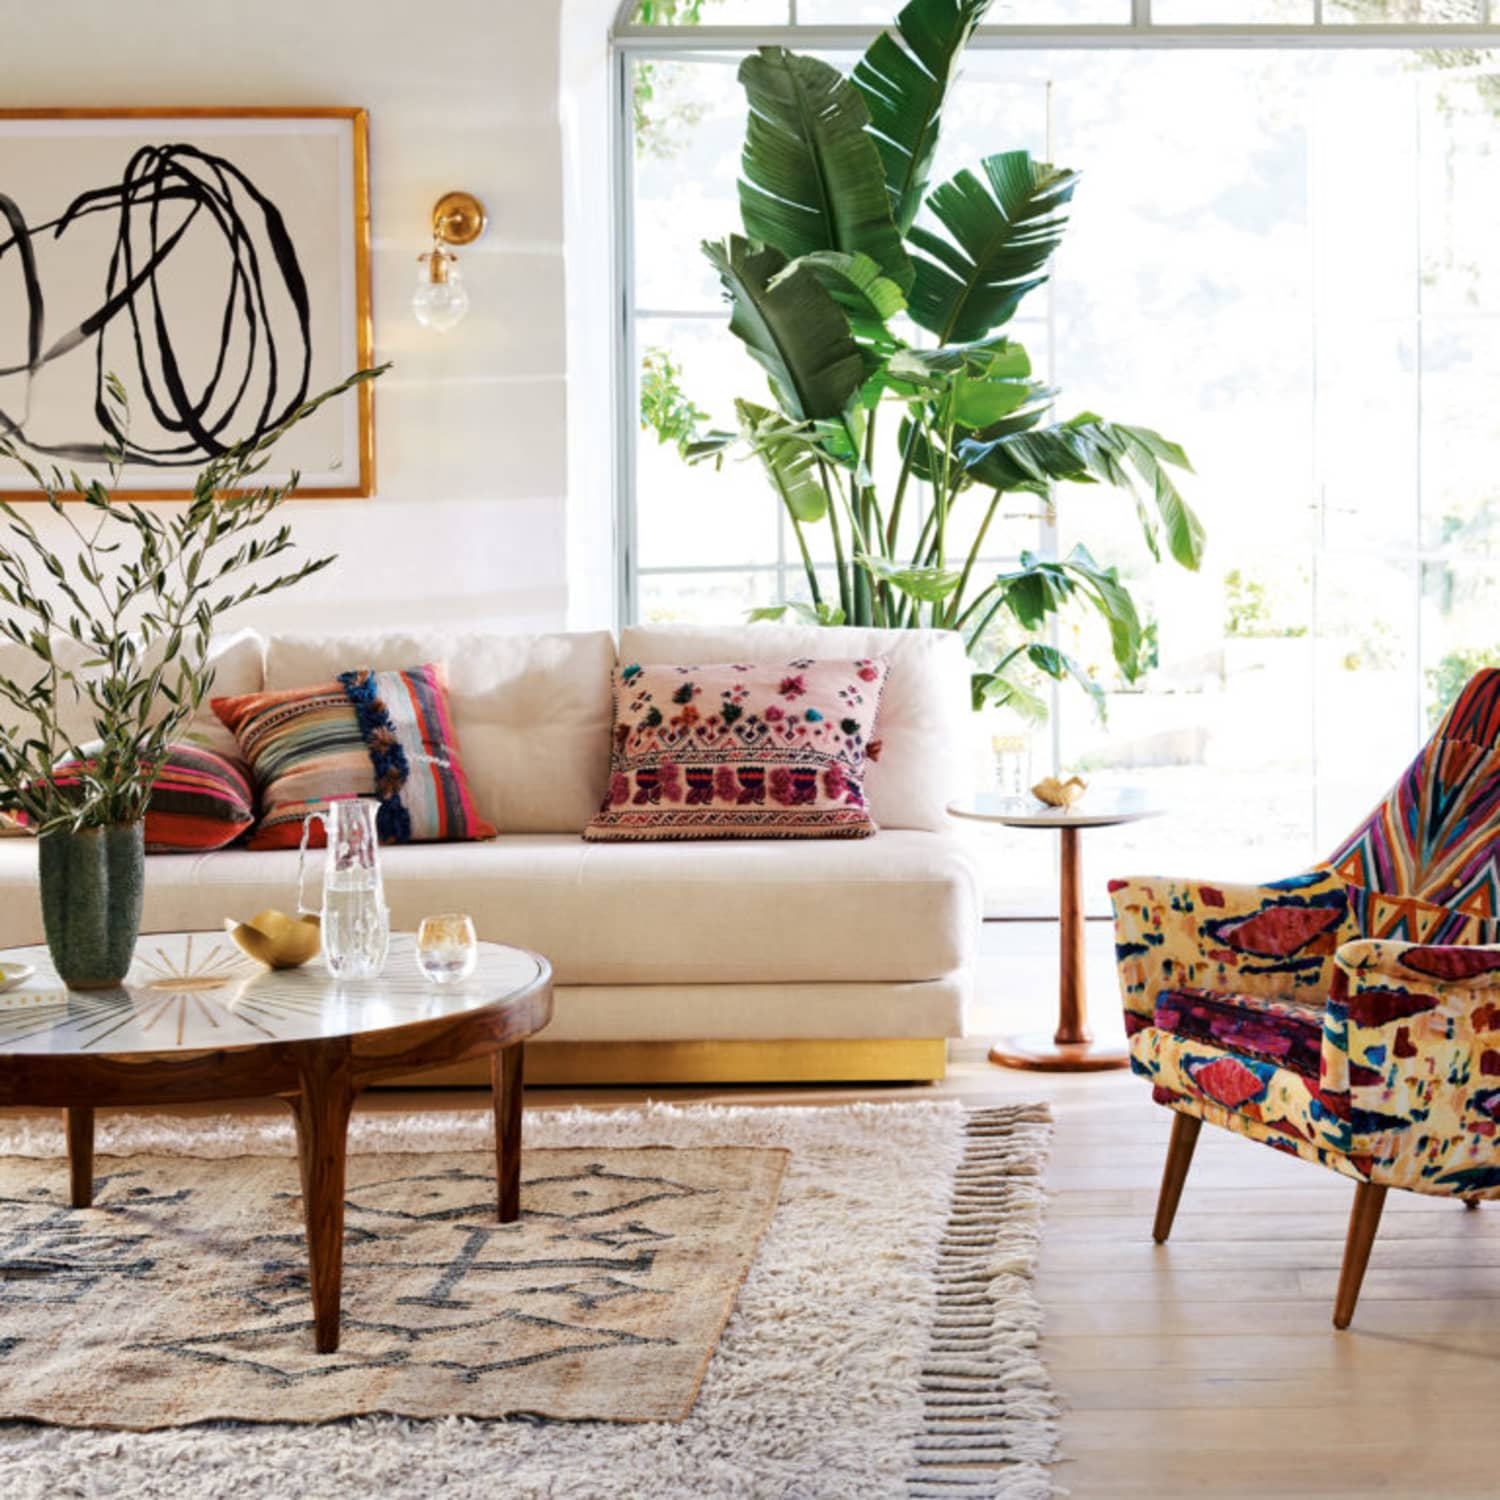 Design Ideas From Rooms That Nail The Layered Rug Look Apartment Therapy